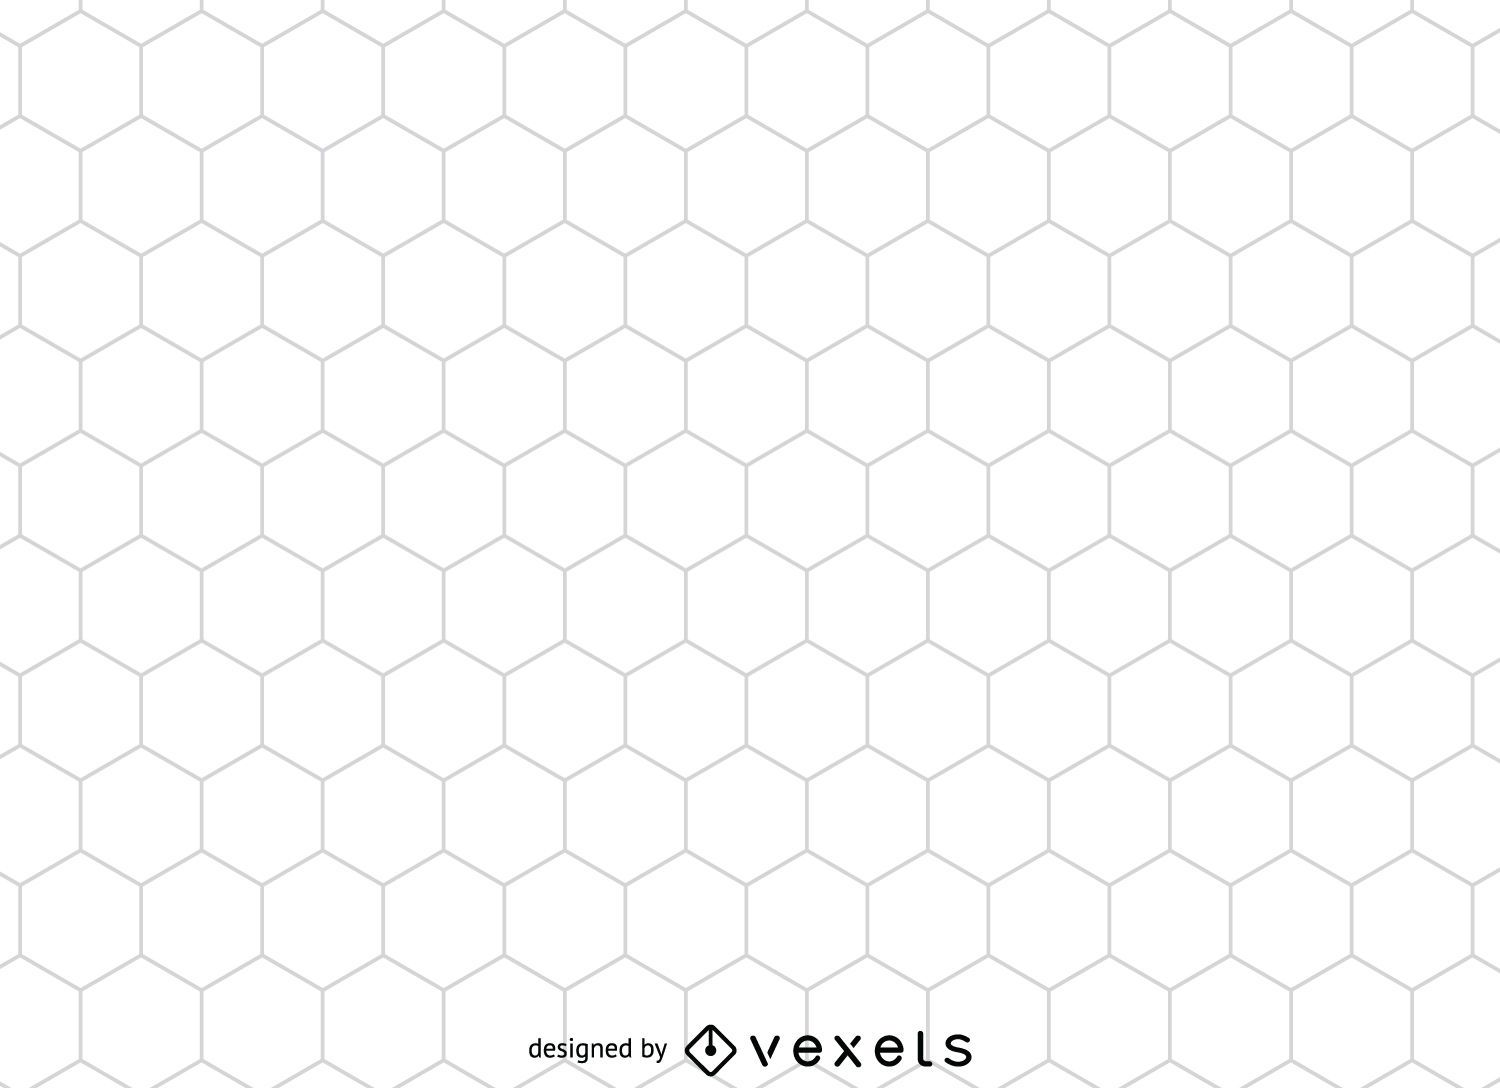 Hexagonal honeycomb pattern - Vector download